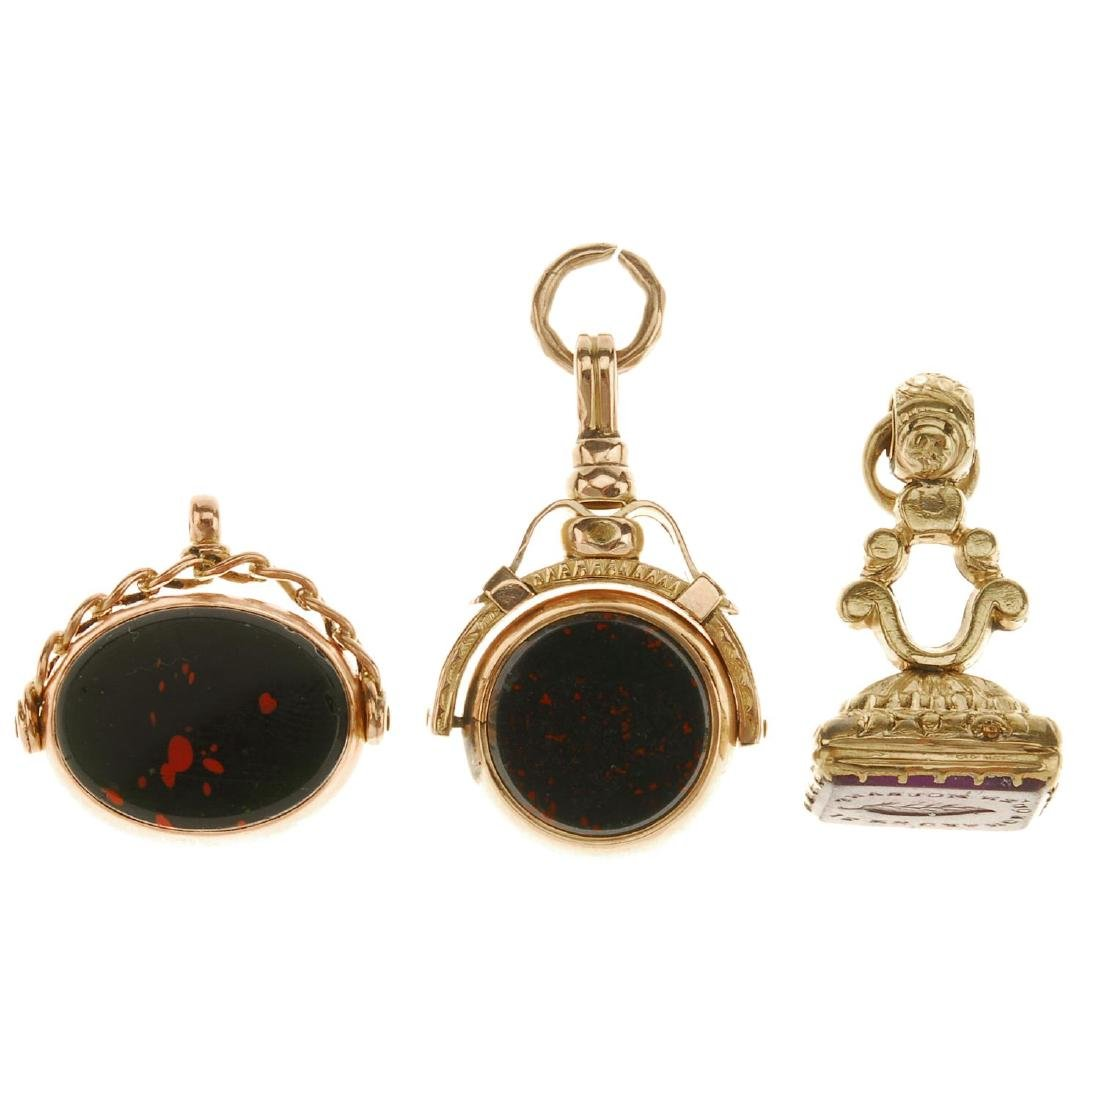 Two 9ct gold swivel fobs and an intaglio fob. The